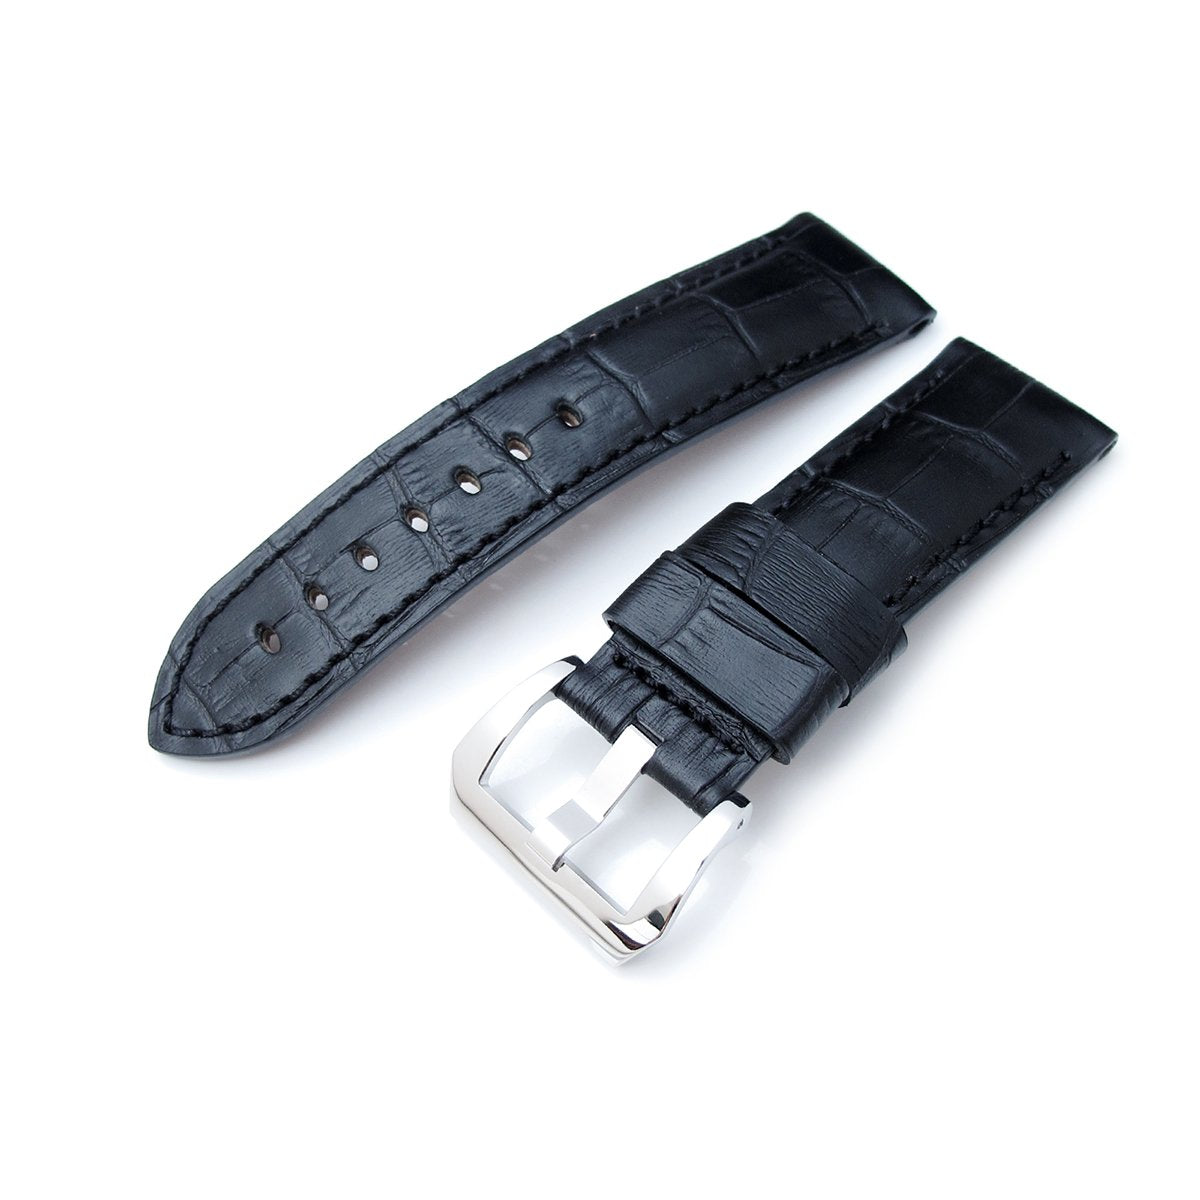 24mm CrocoCalf (Croco Grain) Matte Black Watch Strap with Black Stitches Polished Screw-in Buckle Strapcode Watch Bands